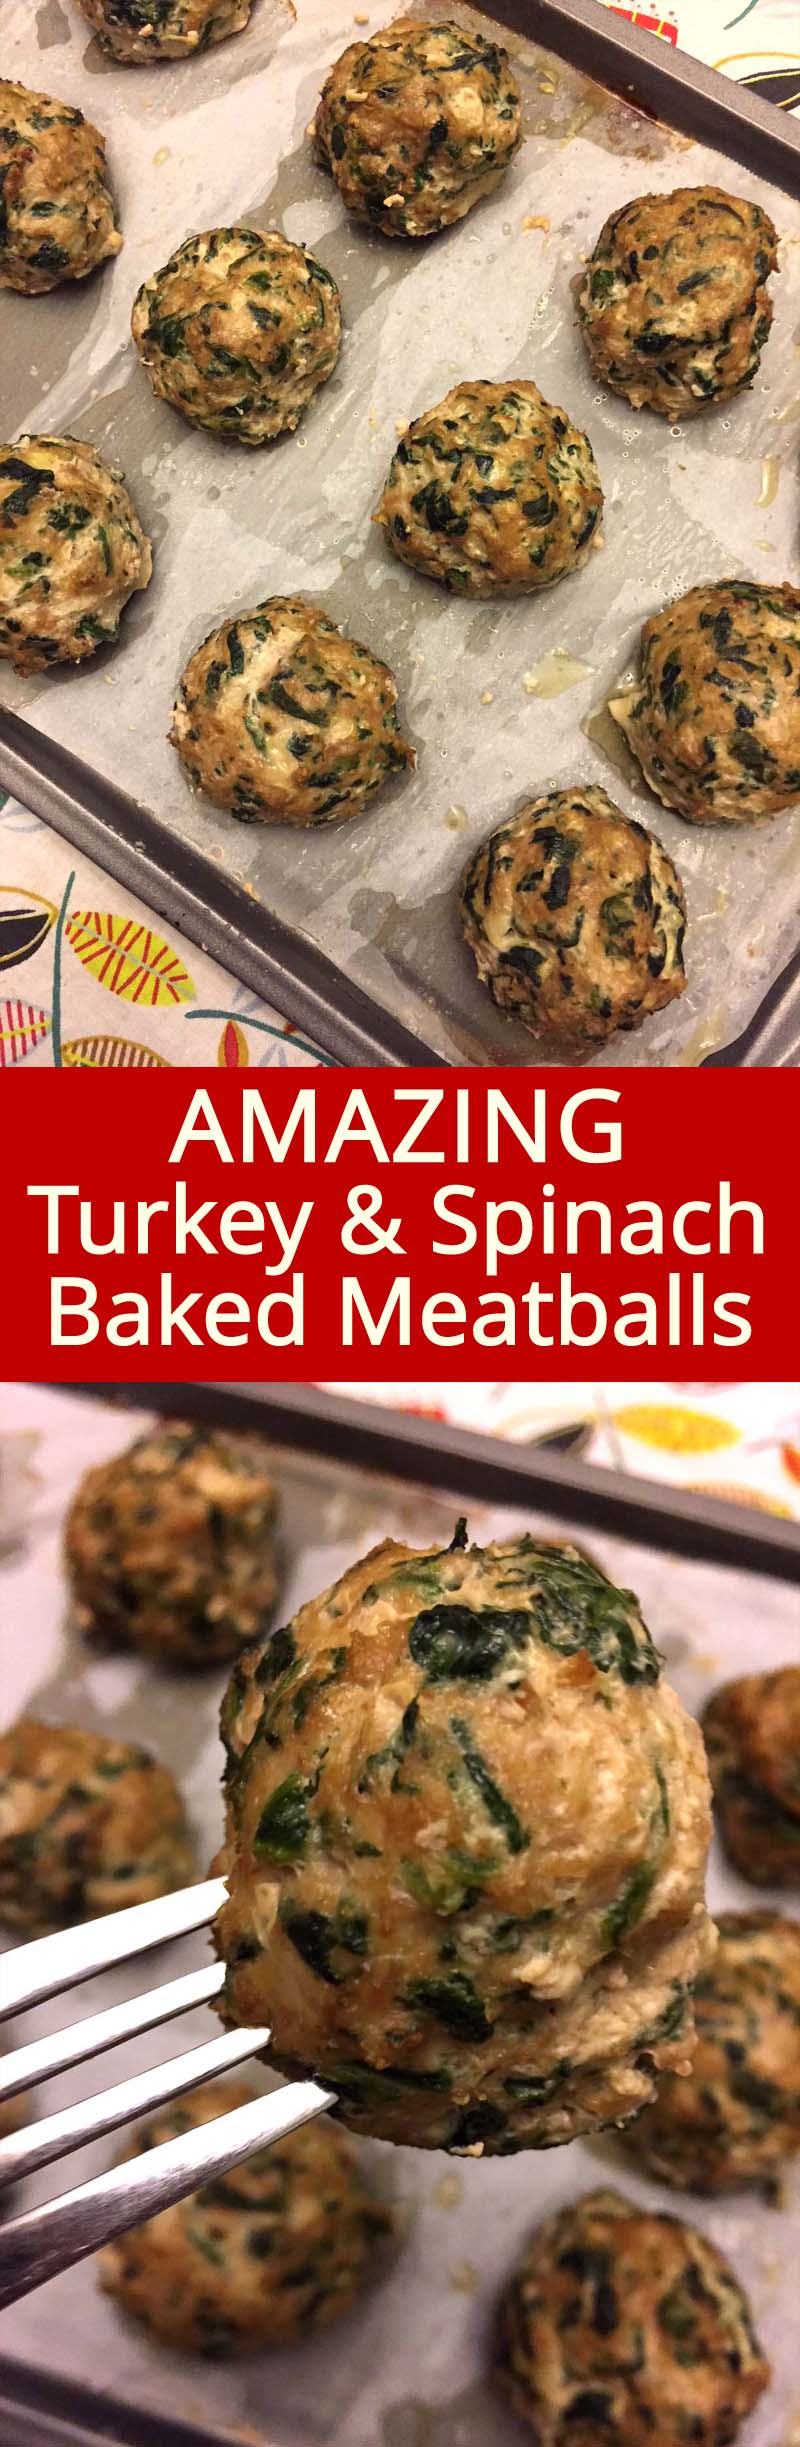 These turkey spinach meatballs are so healthy and delicious! Super easy to make, just add the spinach in the turkey meatball mixture, roll into meatballs and bake! I'm going to make these meatballs every week!